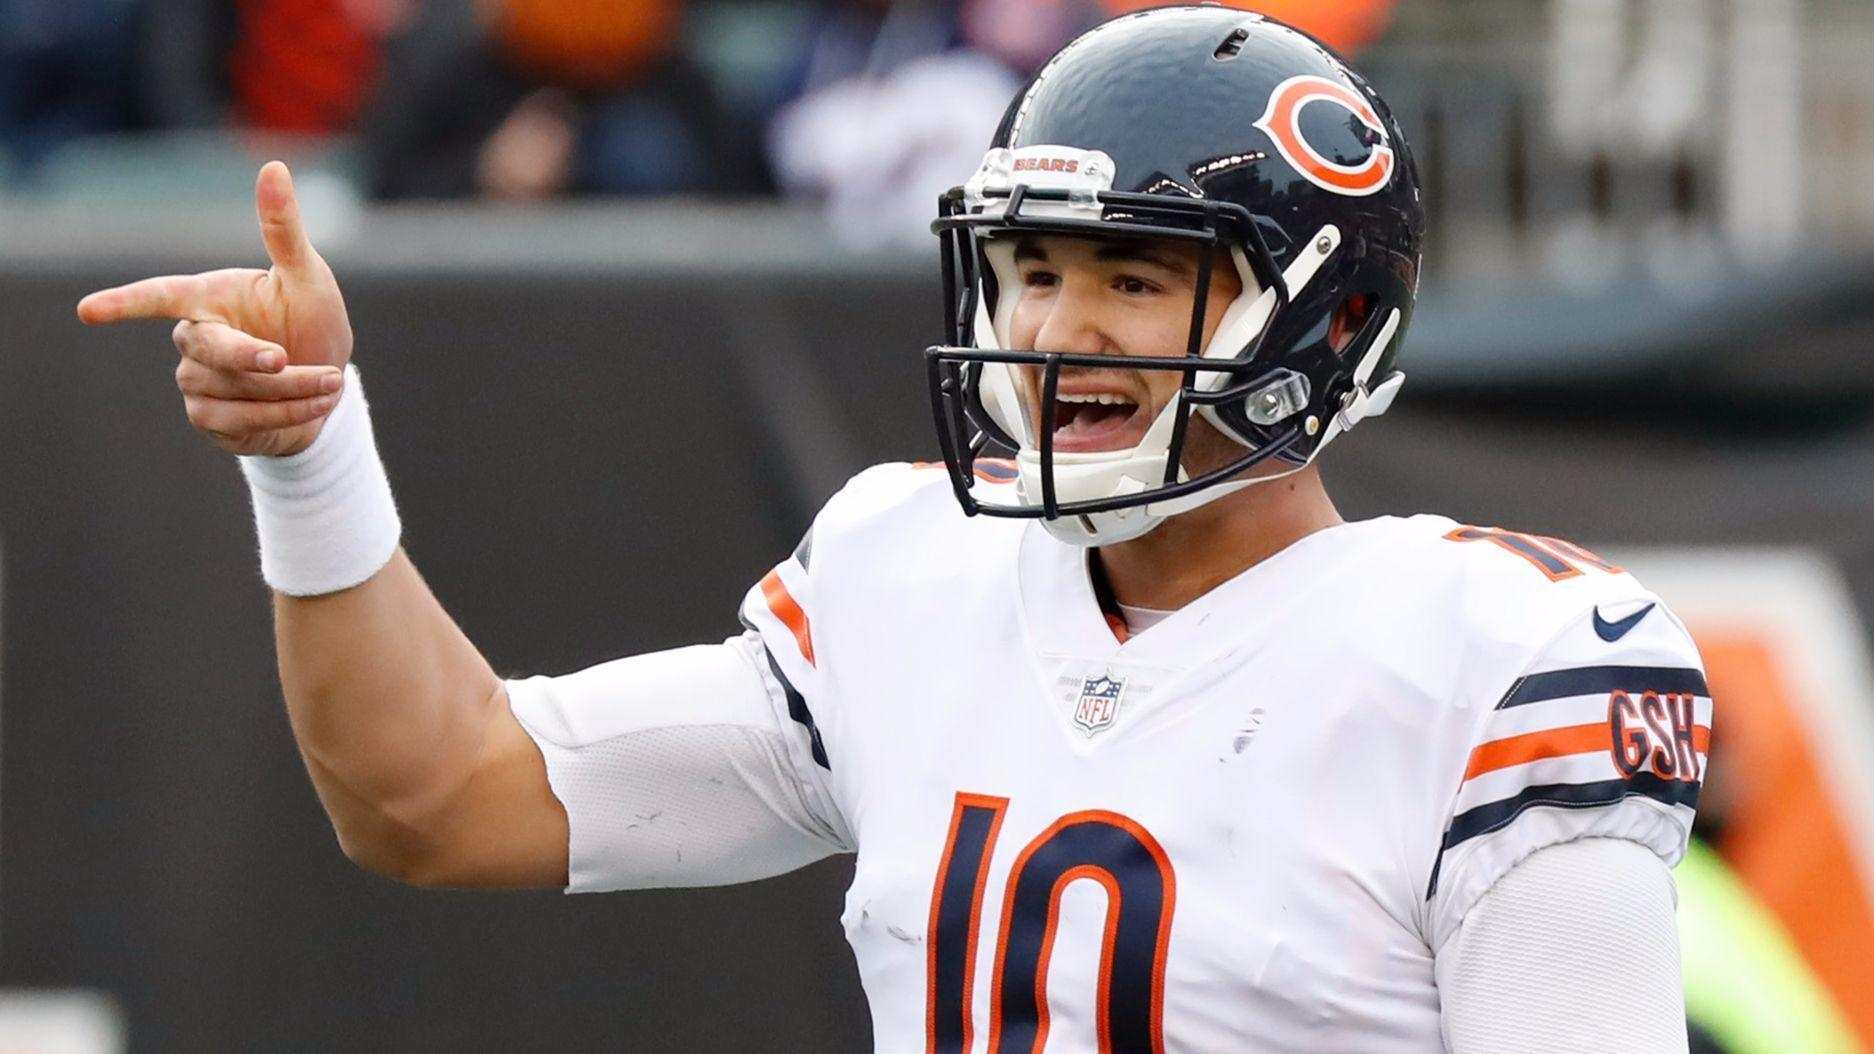 Ct-spt-bears-mitch-trubisky-john-fox-mailbag-20171213